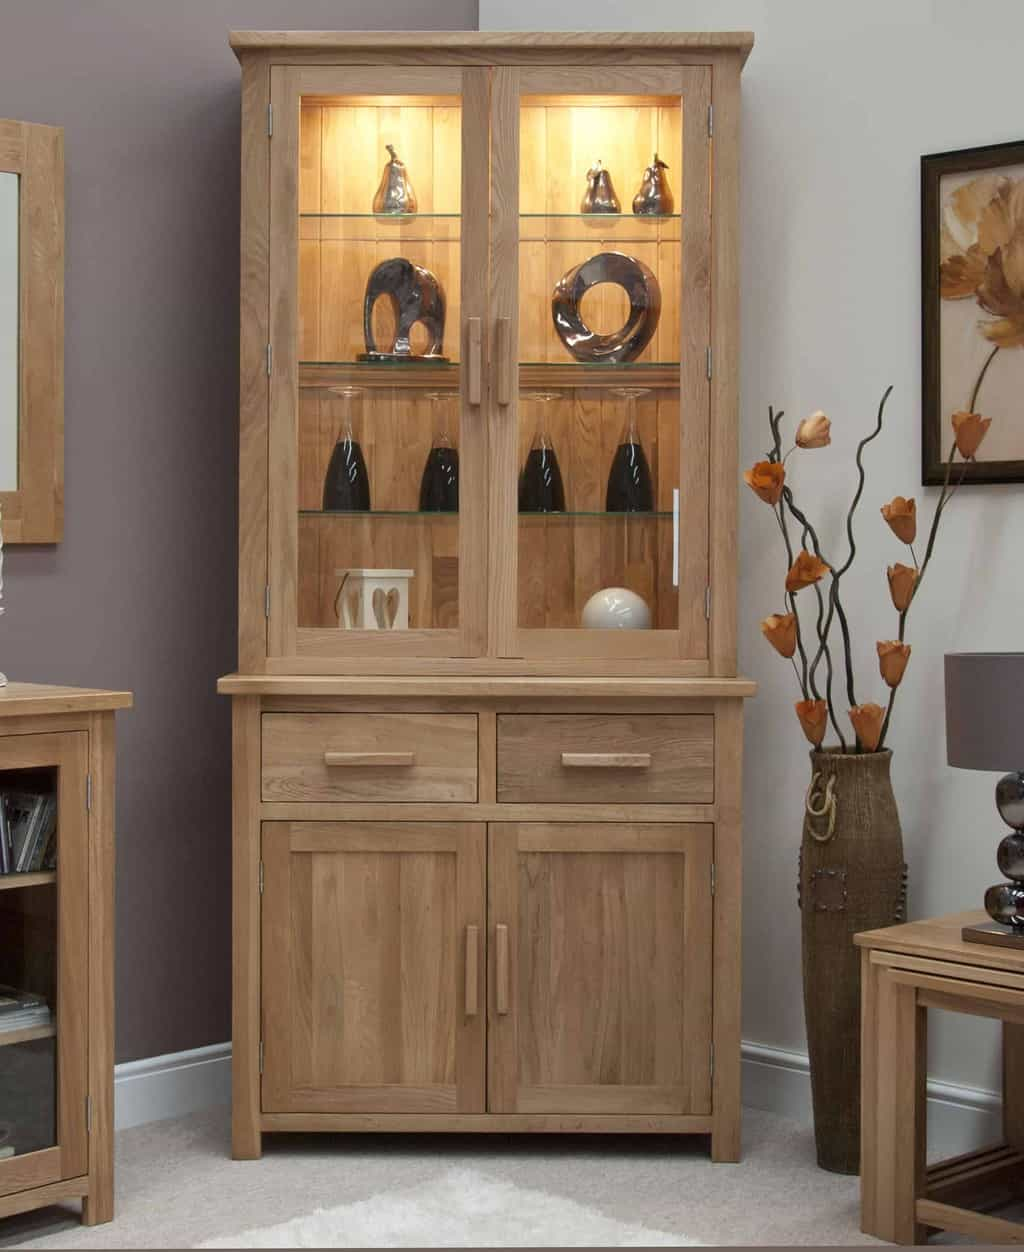 Dining Room Cabinets Ideas: Opus Contemporary Oak Small Dresser Display Cabinet